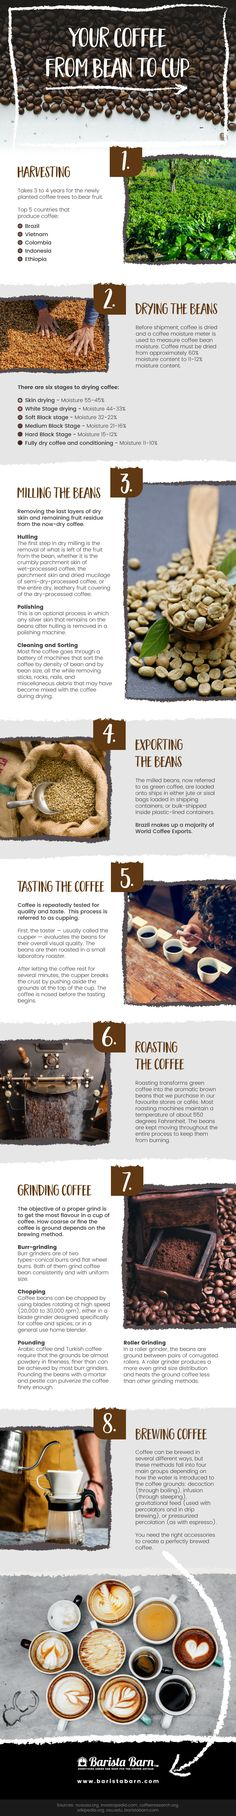 The world of coffee is more complex than we ever thought, so it's time to brush up on your coffee knowledge (whilst sipping on a cup of your favourite roast, of course) and get to know more about the journey and the processes involved behind your favourite caffeinated beverages. #coffee #infographics #arabica #coffeelovers #coffeeholics  #wellness Coffee Plant, Infographics, Roast, Beverages, Beans, Knowledge, Journey, Wellness, Coffee Flower